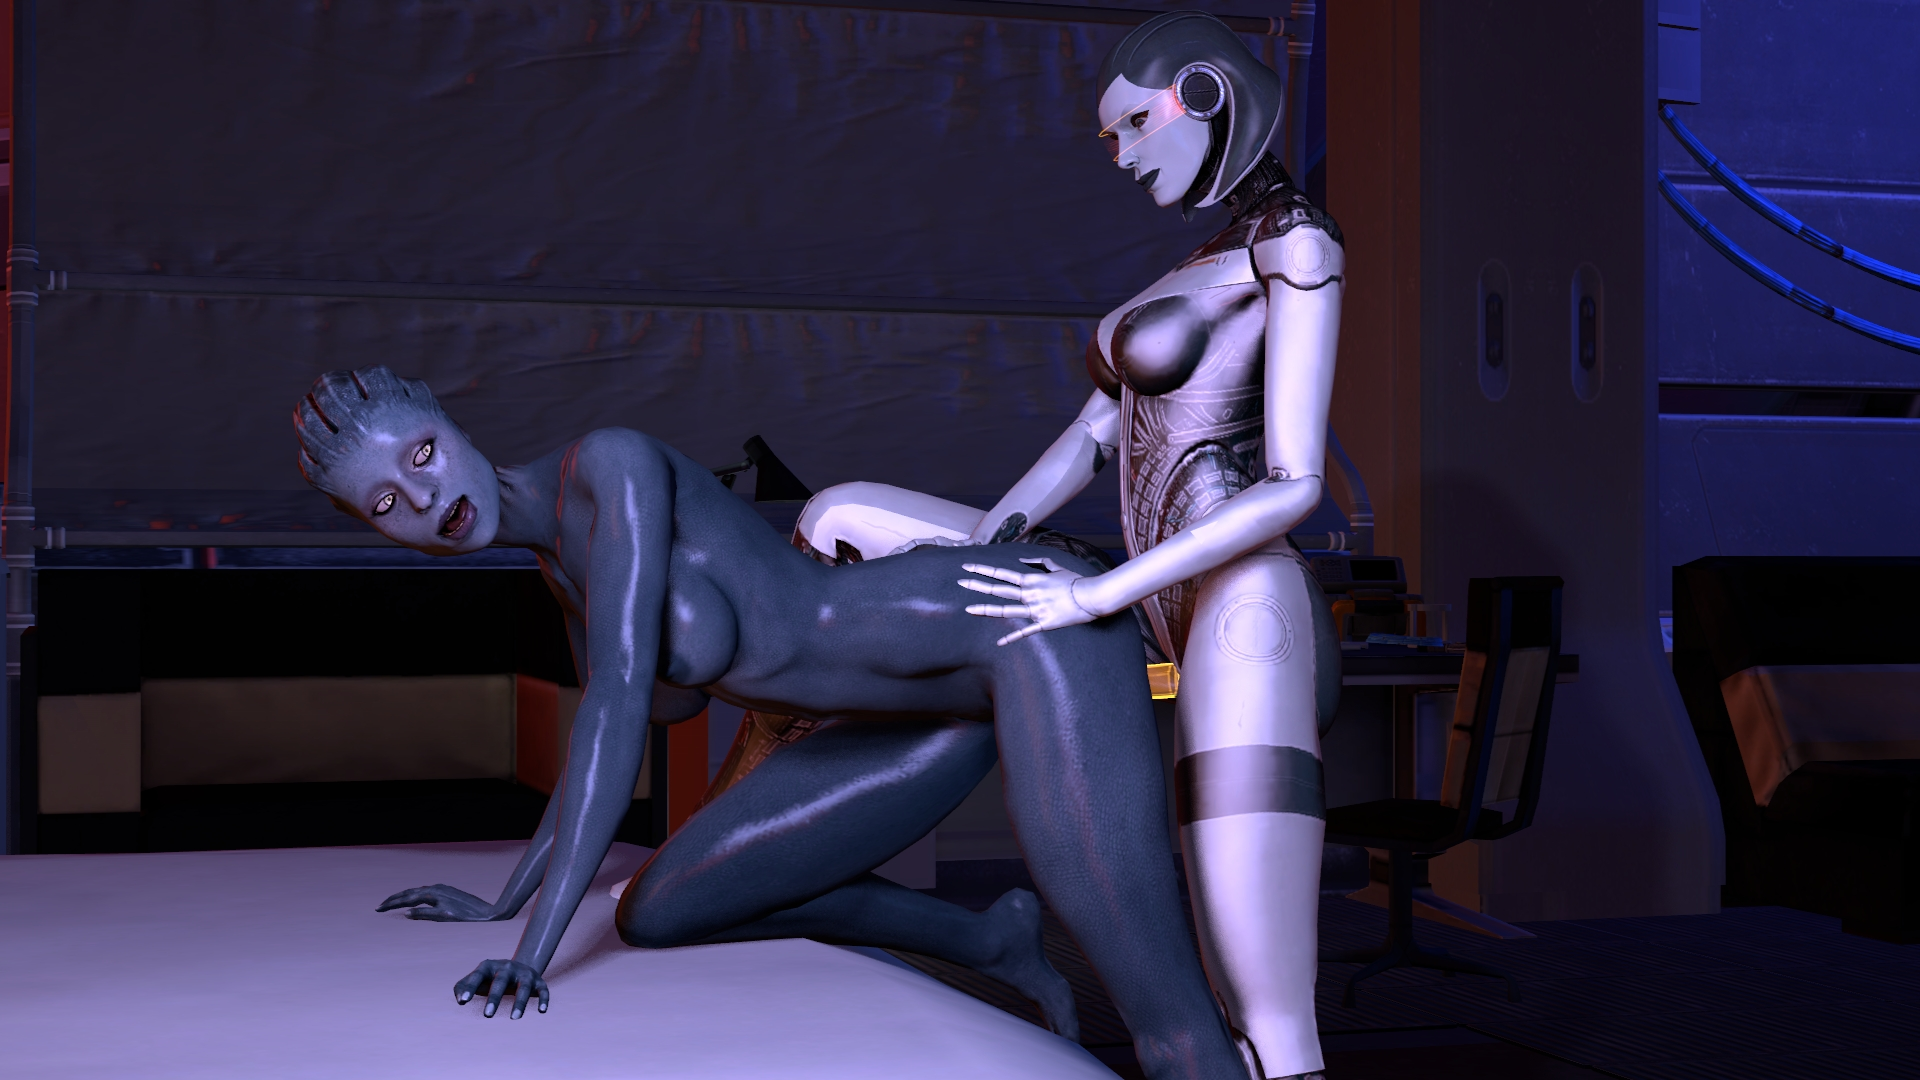 Mass Effect Porn Source Mass Effect Asari Fbe Edi Filmmaker Dabe Cddd ...